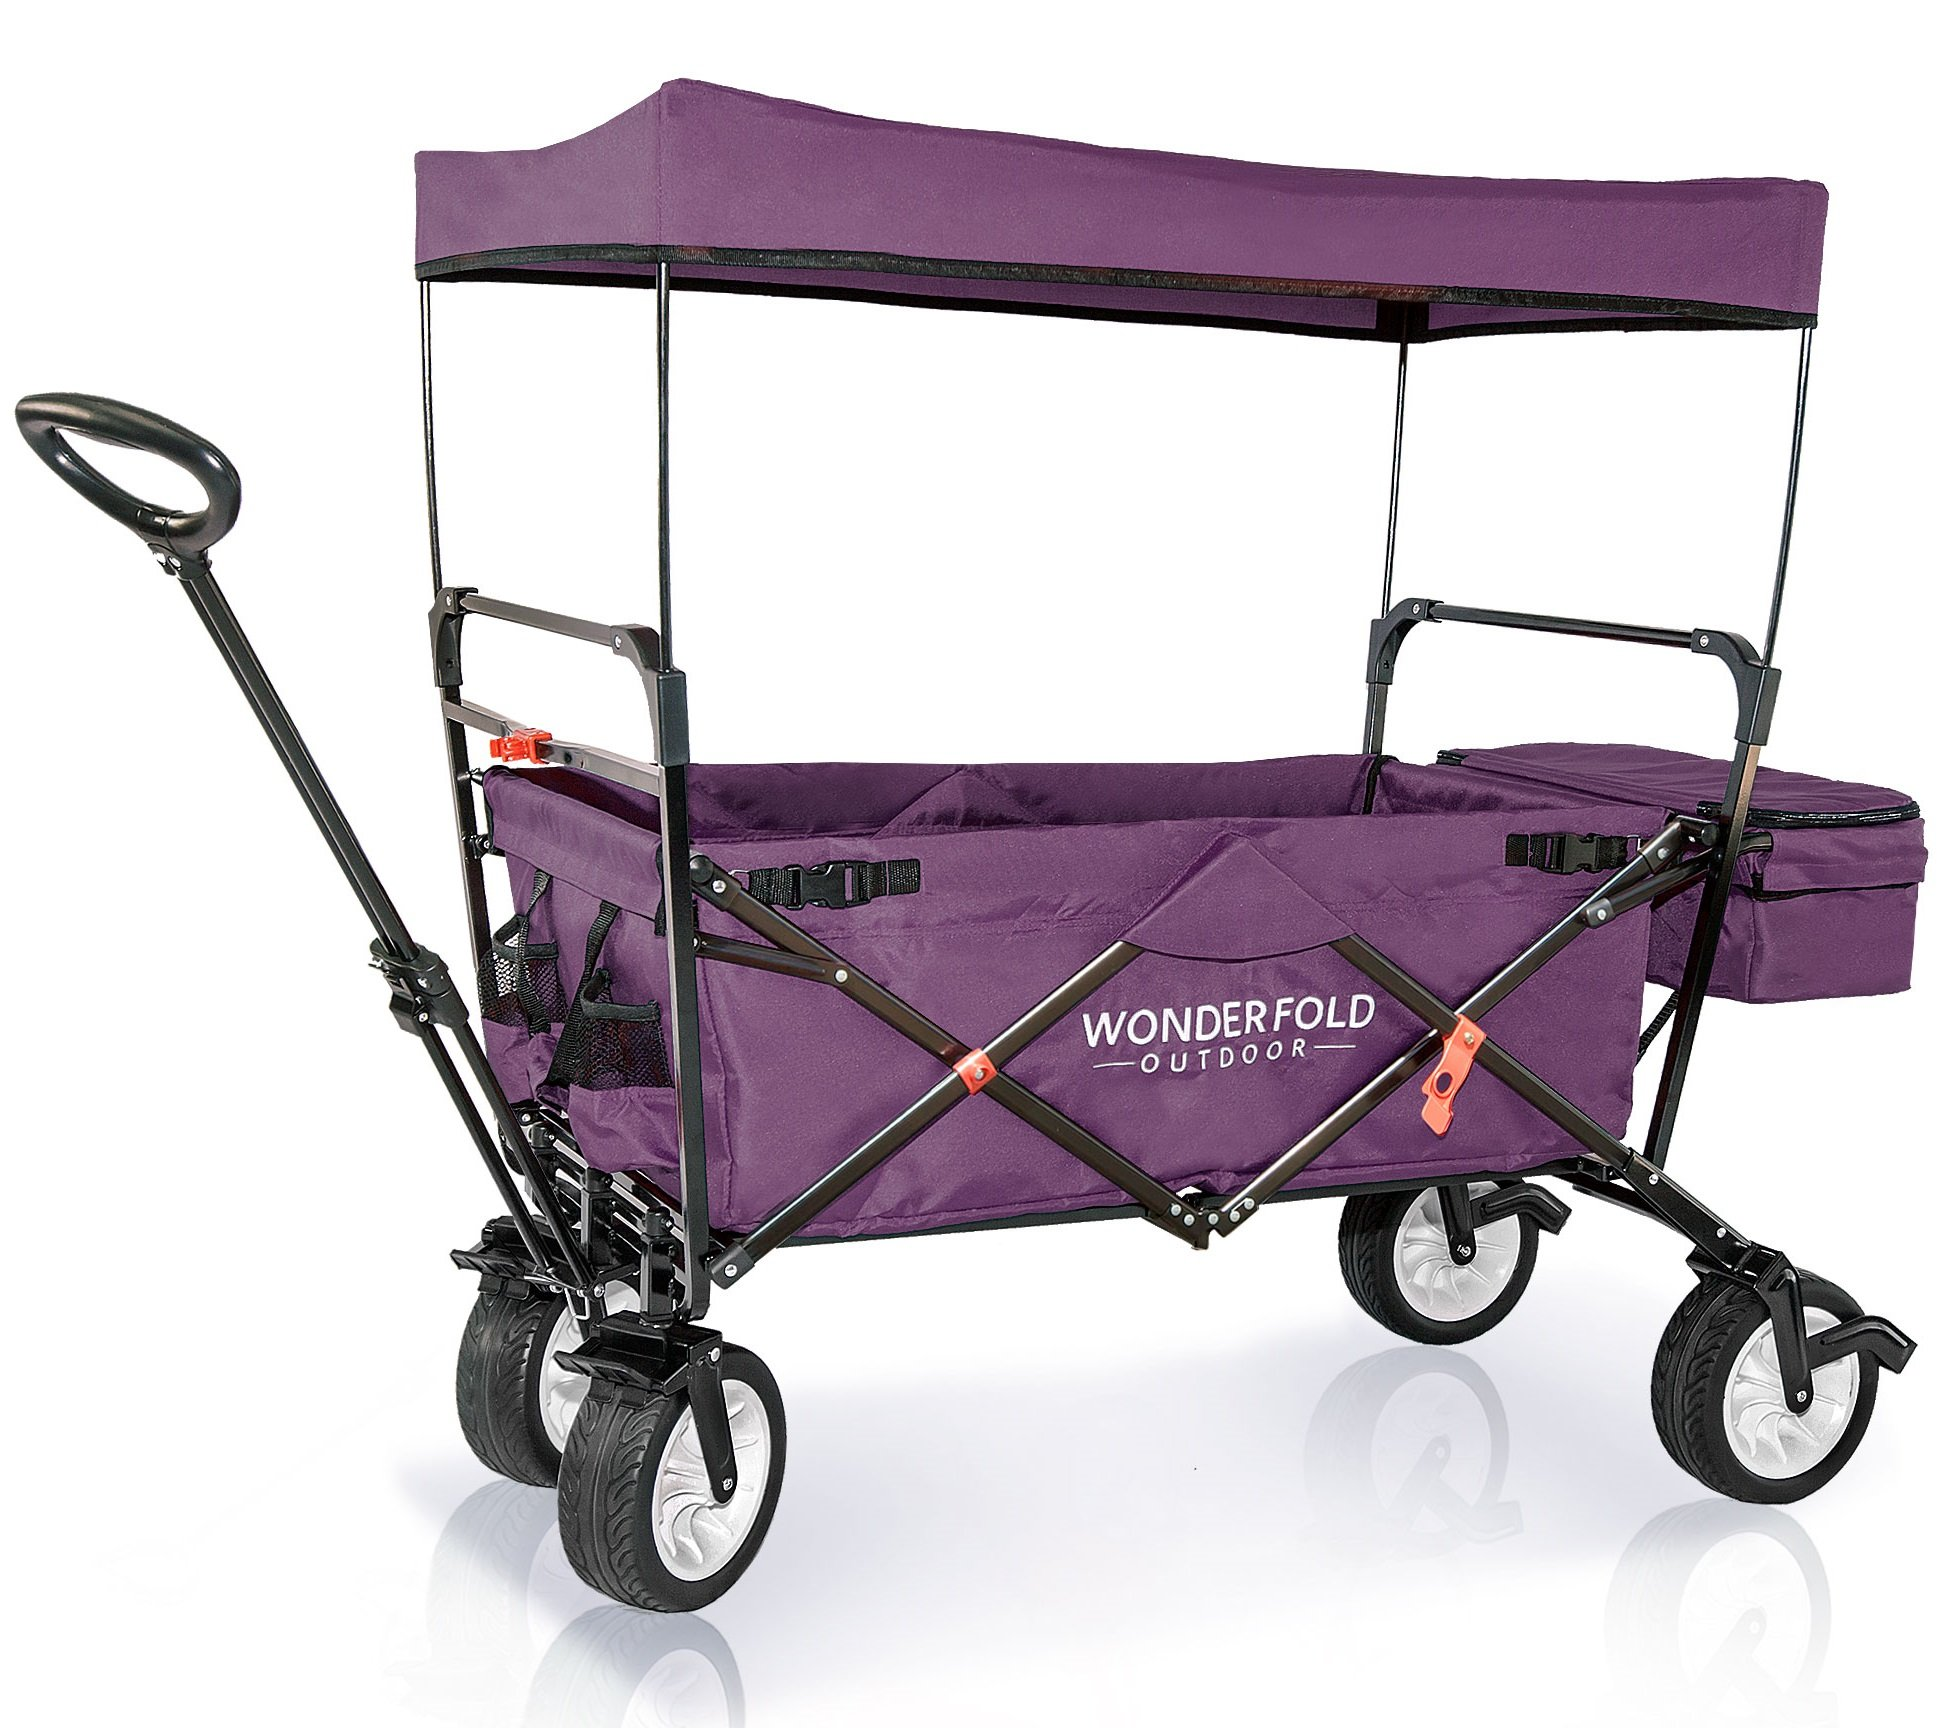 WonderFold Outdoor NEW GEN Collapsible Folding Wagon with Canopy - Premium Features: Active Steering Handle with Spring Bounce/Auto Safety Locks/One Pedal Brake/Stand/EVA Wide Tire (Tyrian Purple)